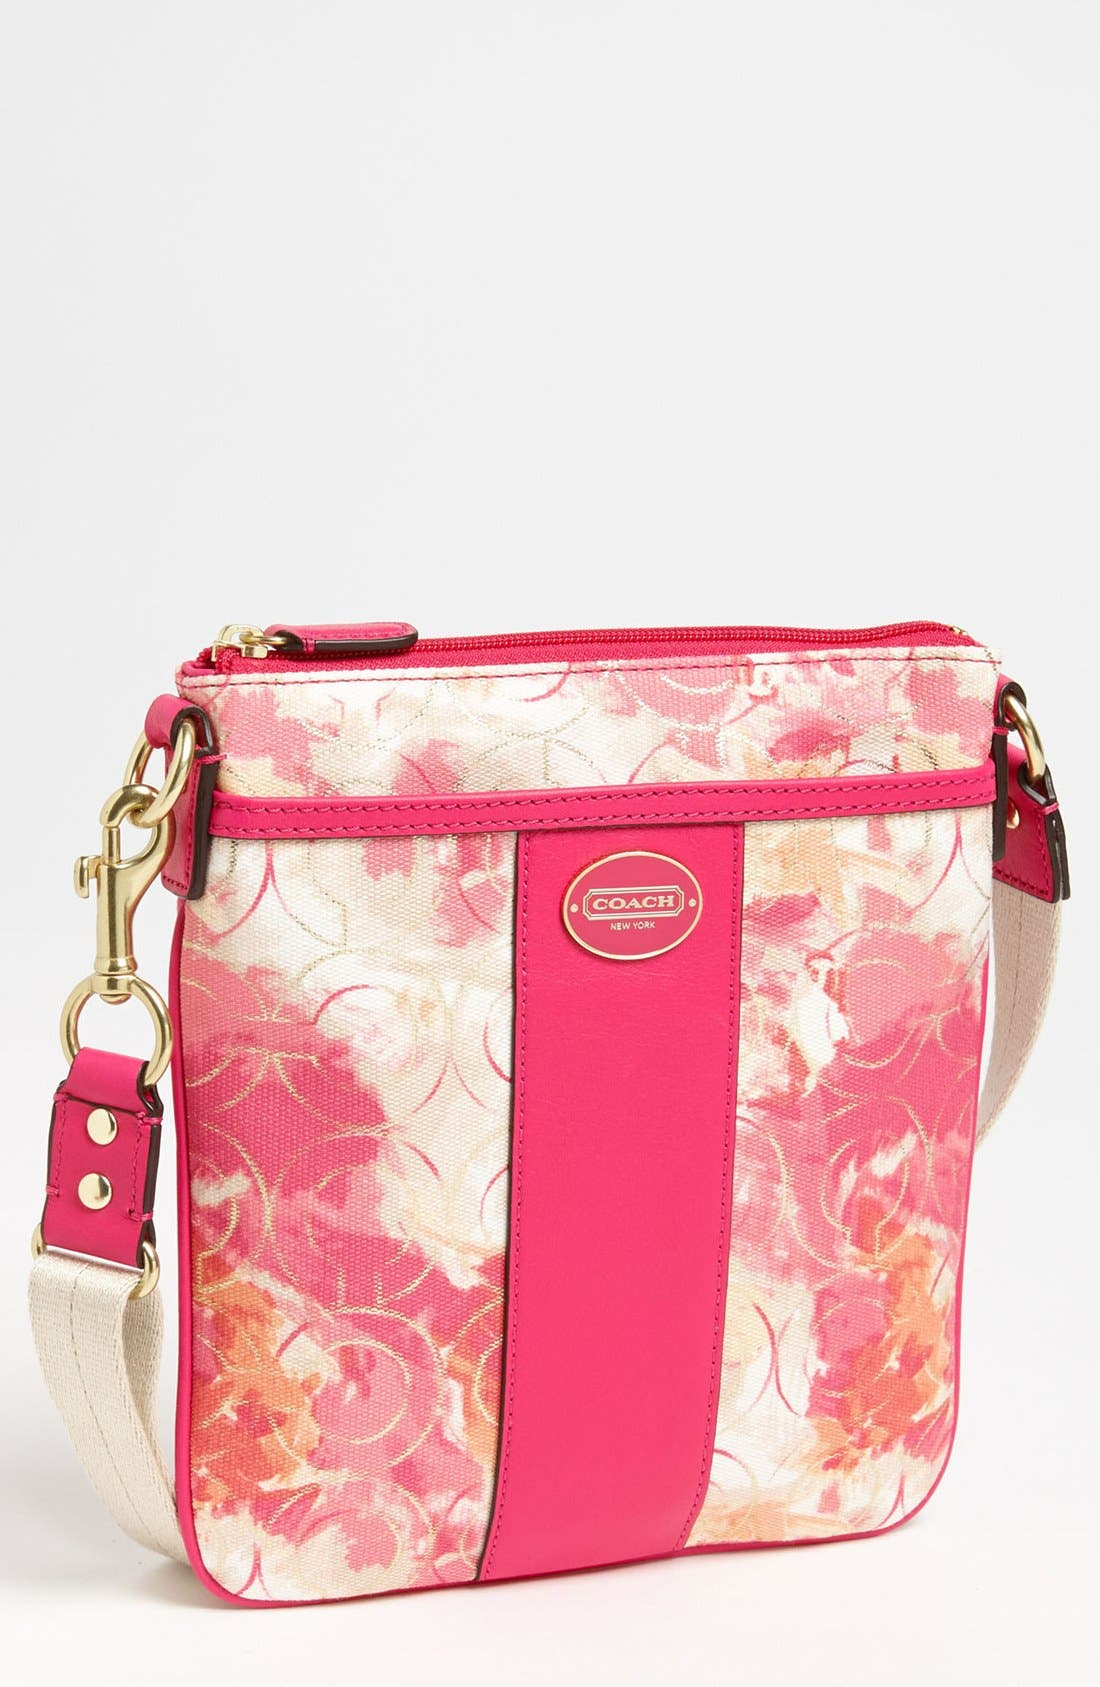 Main Image - COACH 'Swingpack' Floral Print Crossbody Bag